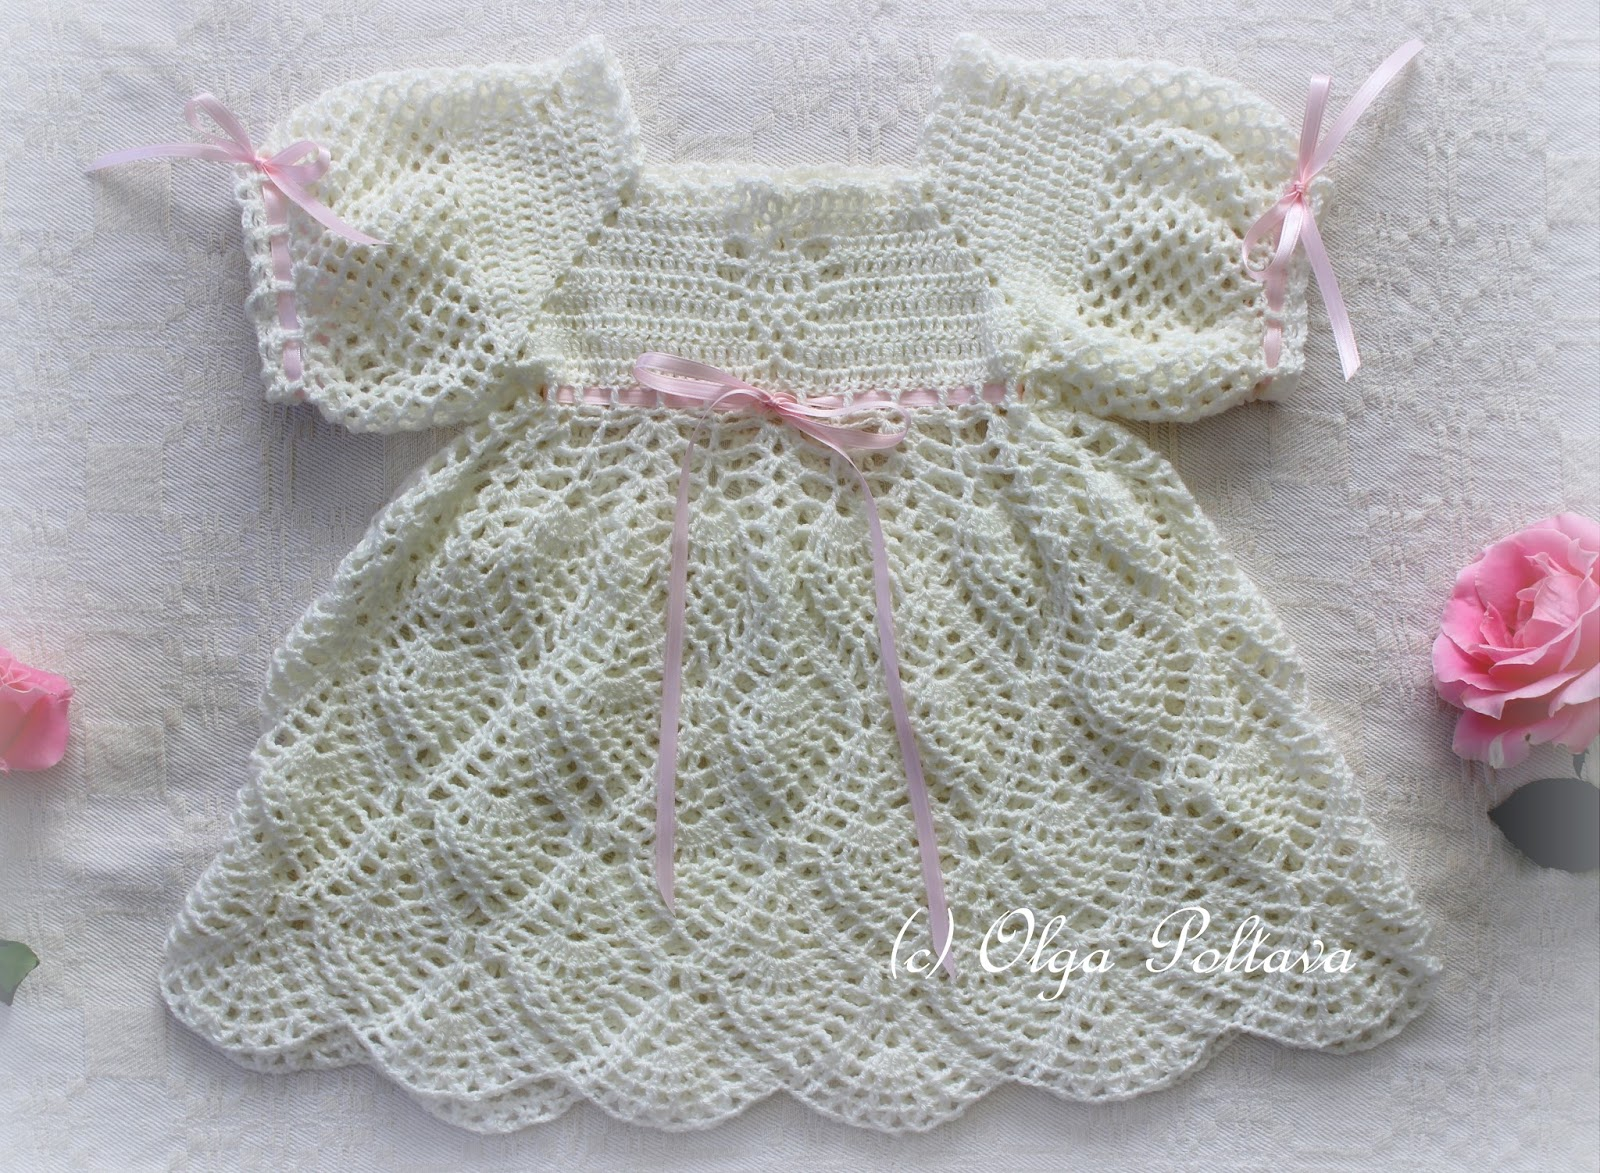 Lacy Crochet: Whipped Cream Dress, Free Pattern from Leisure Arts